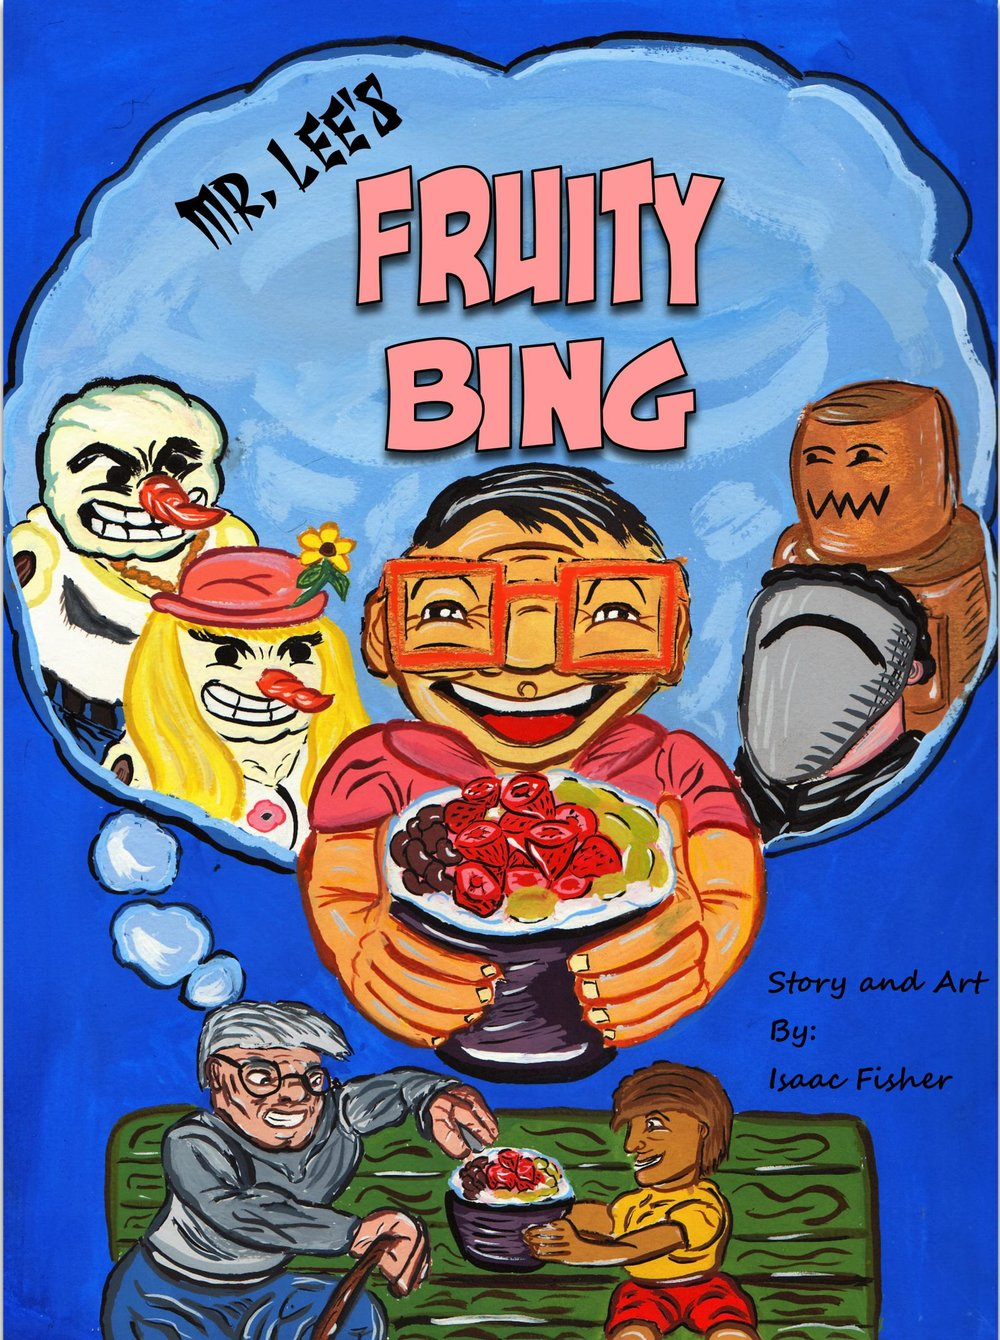 Mr. Lee's Fruity Bing images 1.16 1.jpg